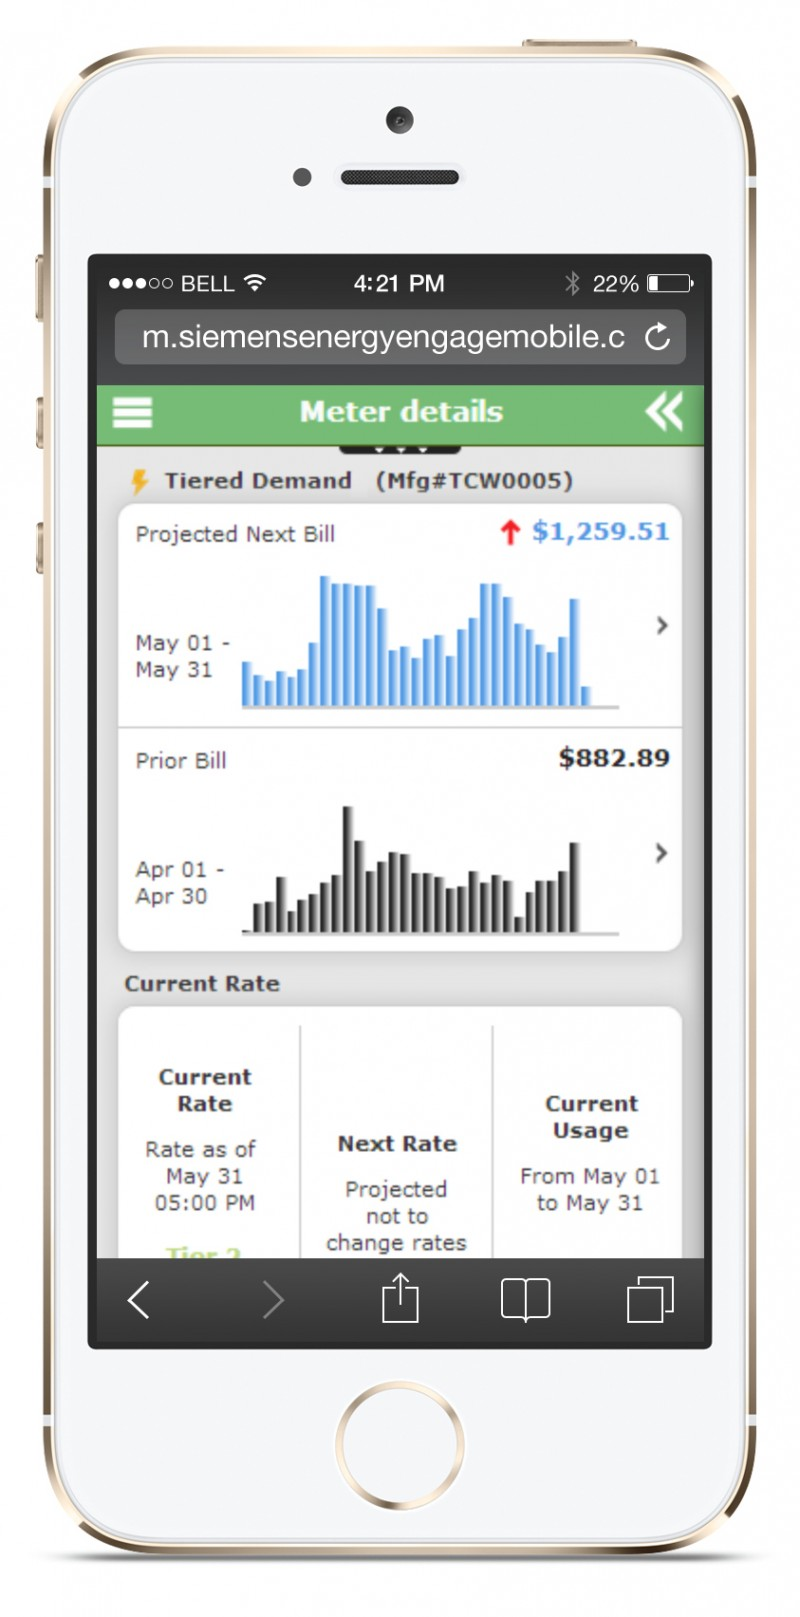 Siemens New Mobile-Web App Enables Utilities to Maximize Customer Engagement While Increasing Operational Efficiency